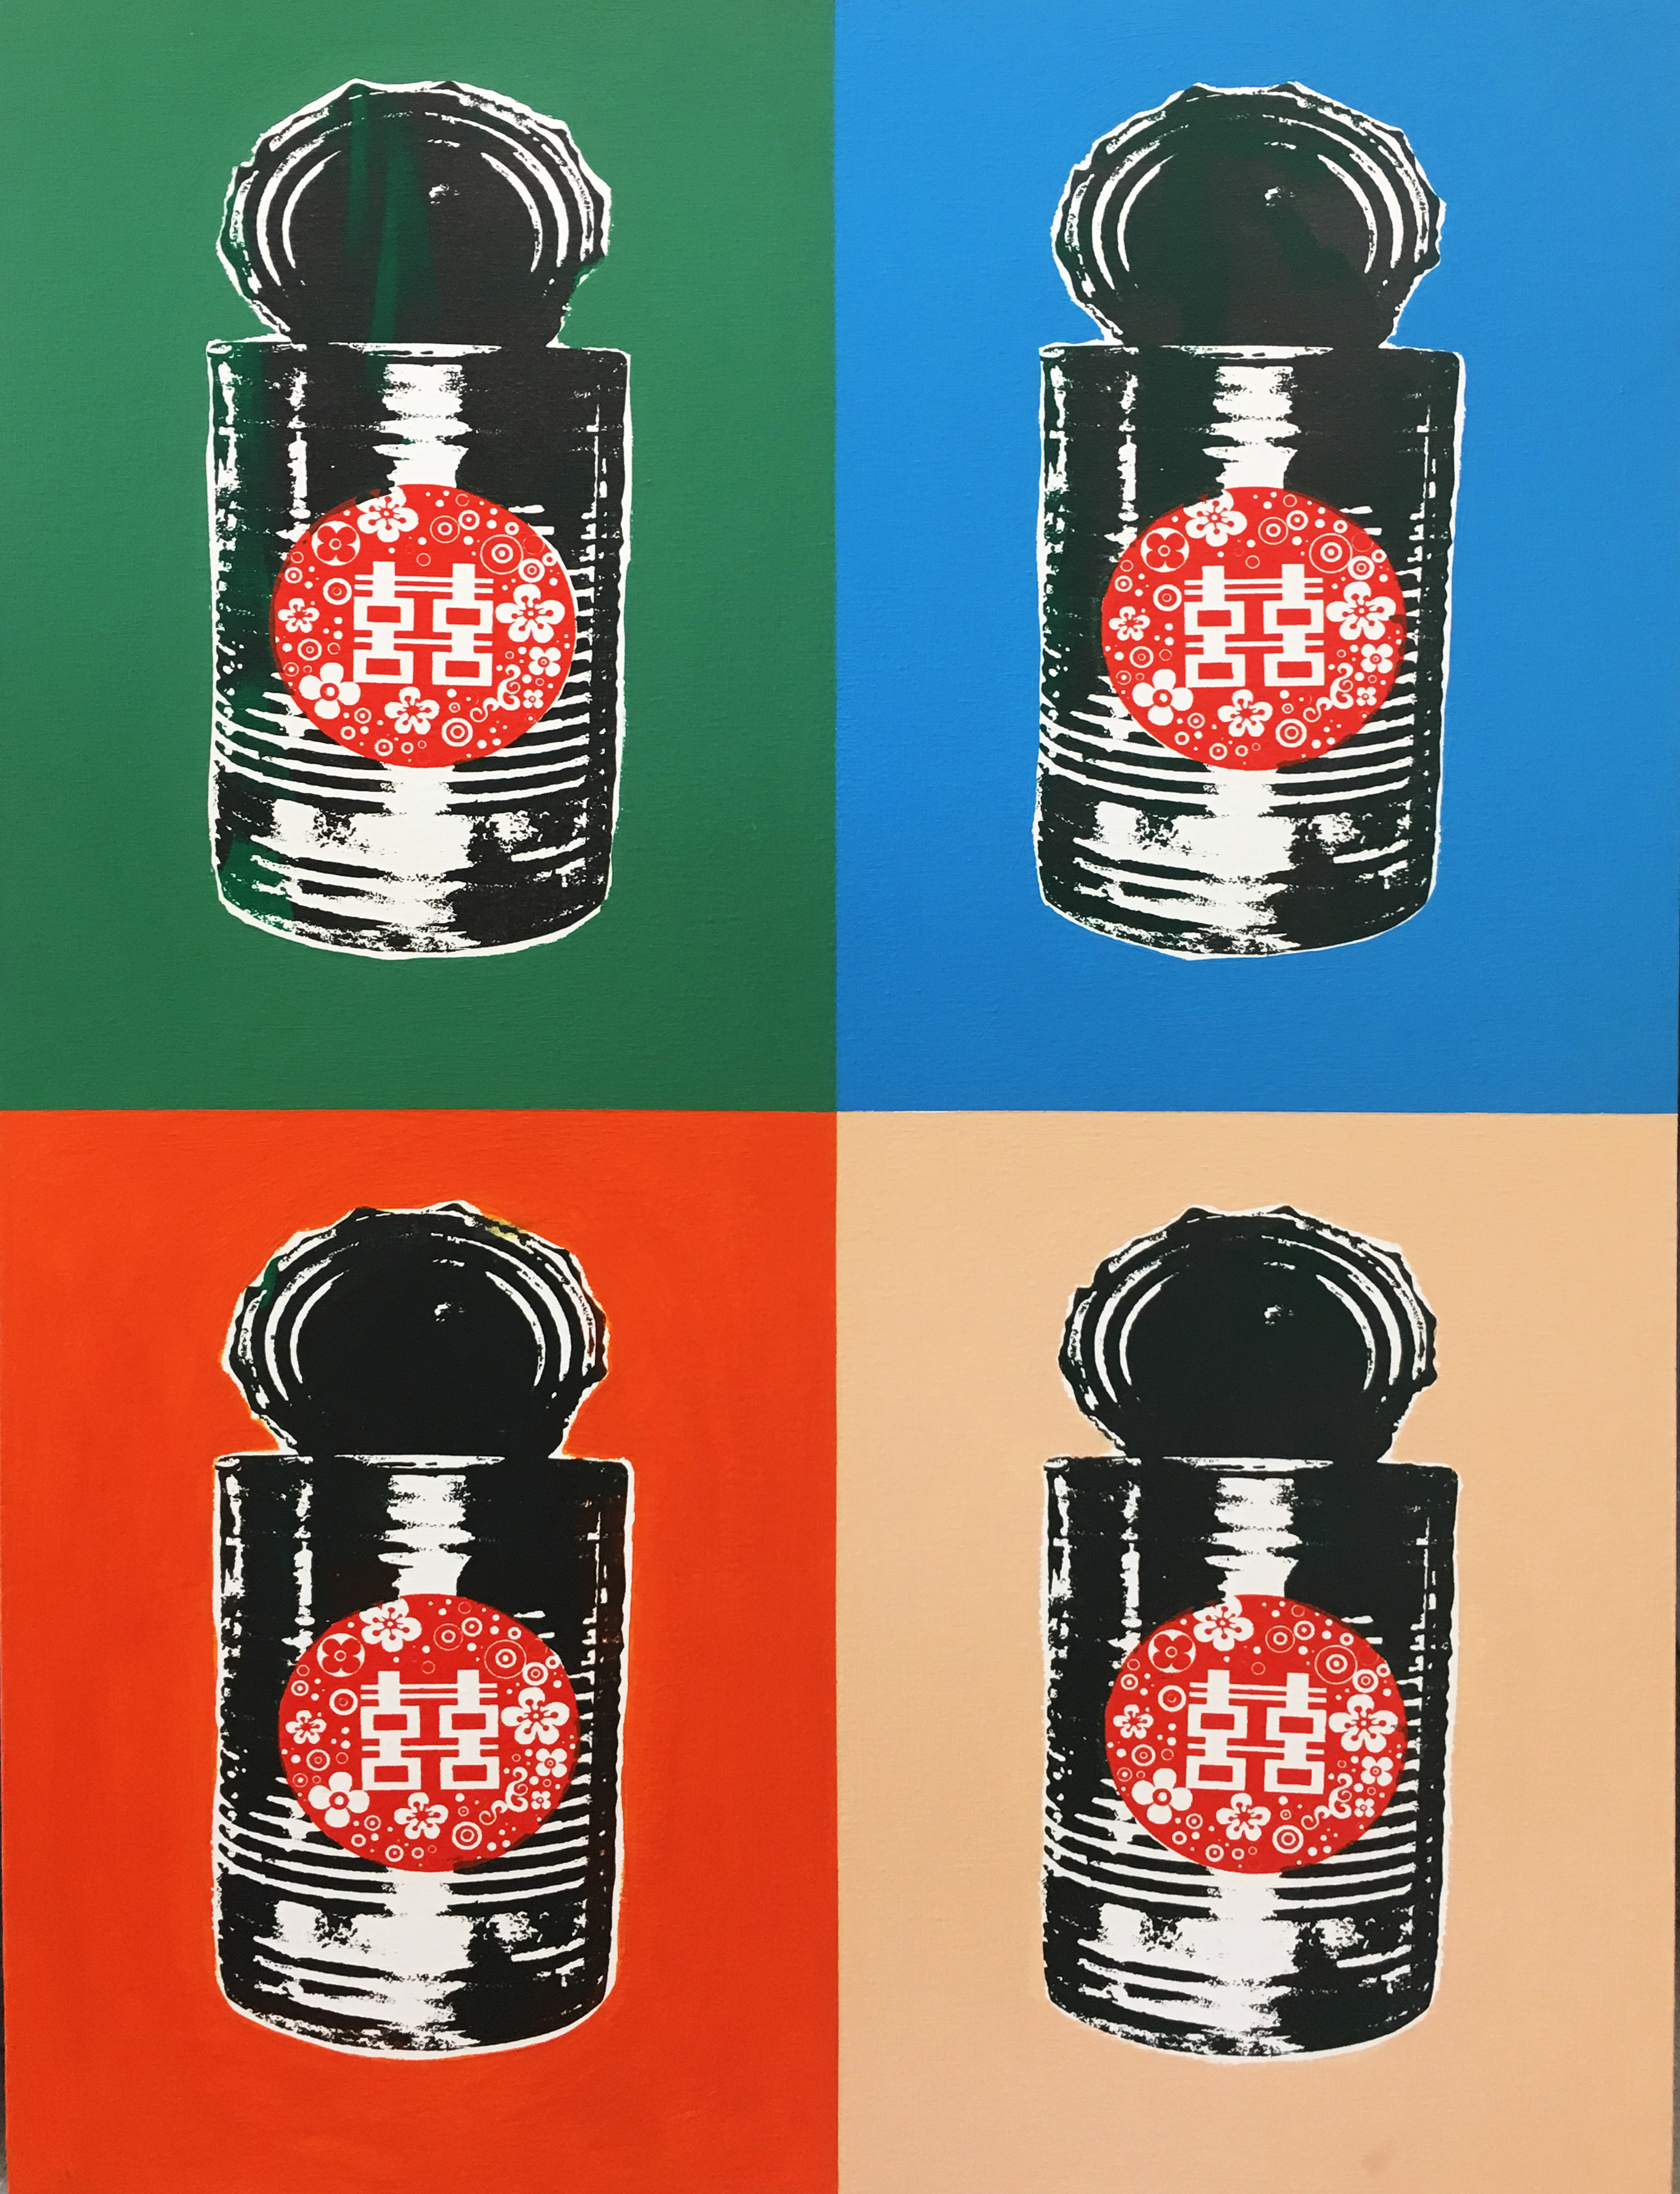 Justin Lee_Tin Can Double Happiness 3_Silkscreen Print On Canvas_48x59cm_2017